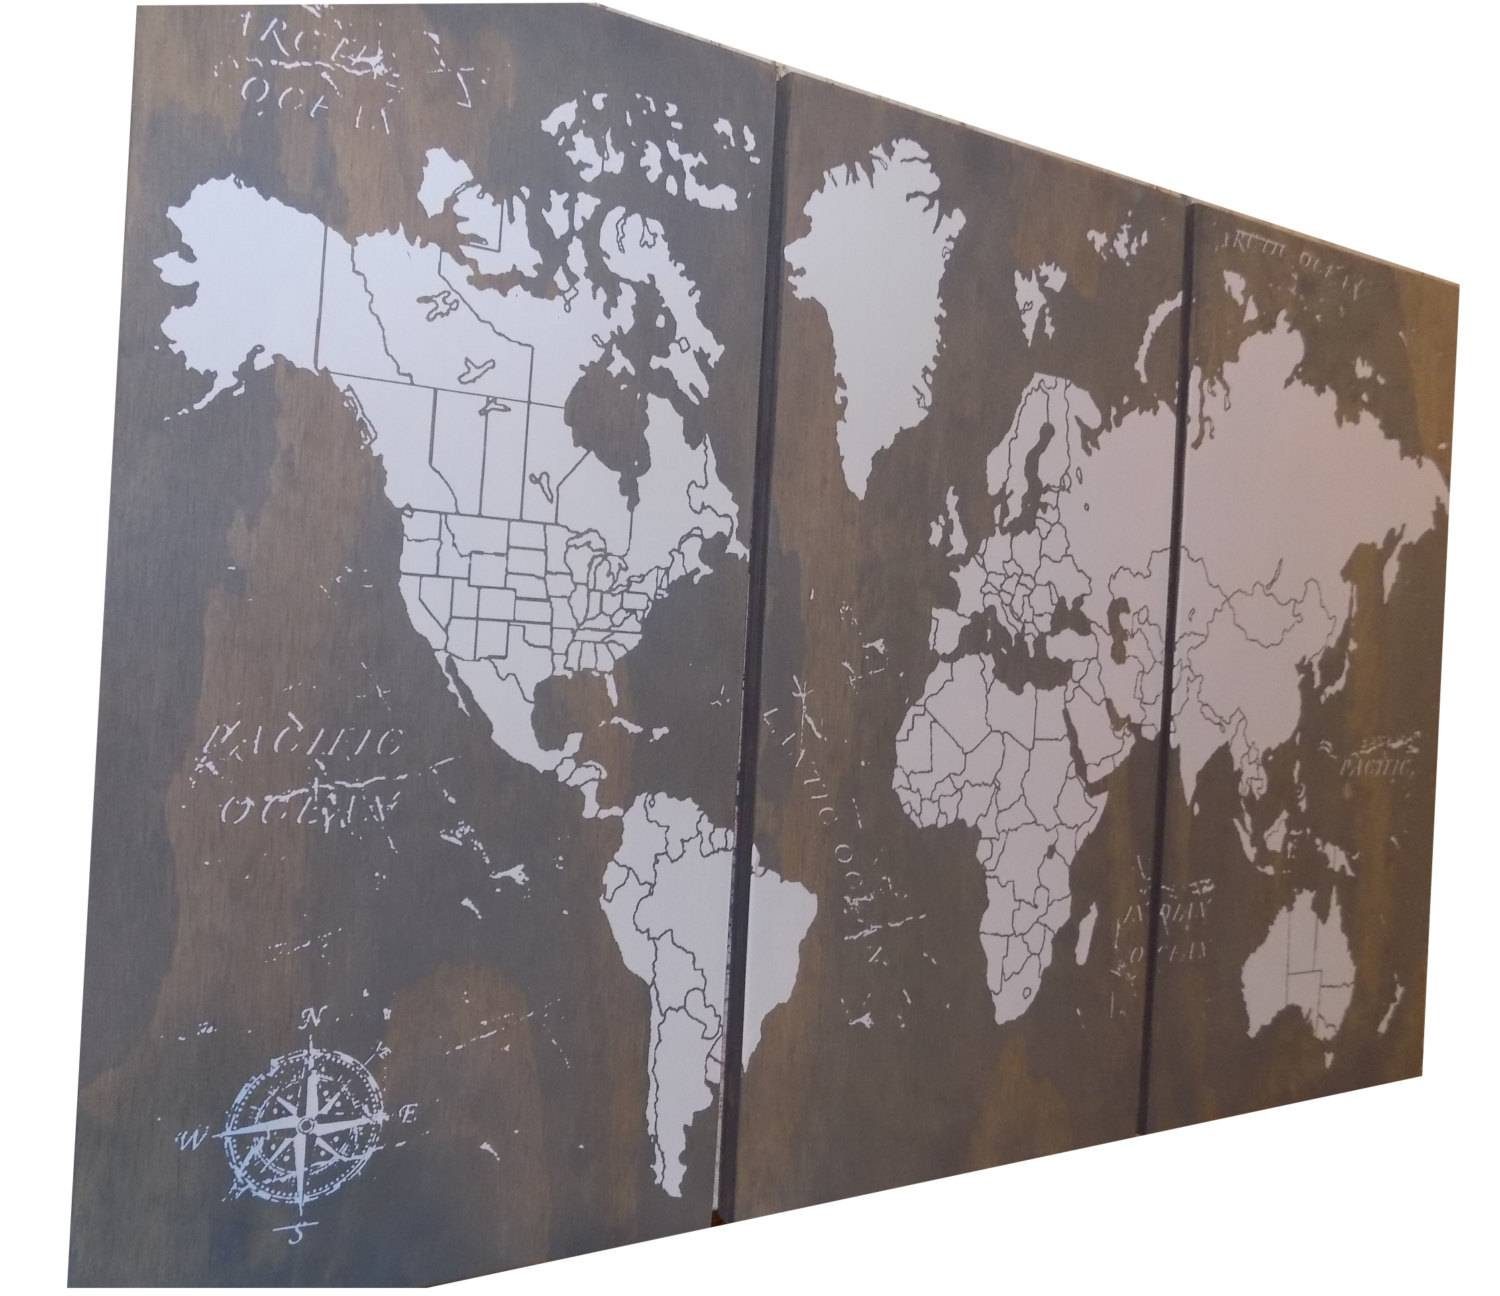 Extra Large World Push Pin Travel Map With Us Borders 3' Throughout 2018 Travel Map Wall Art (View 7 of 20)